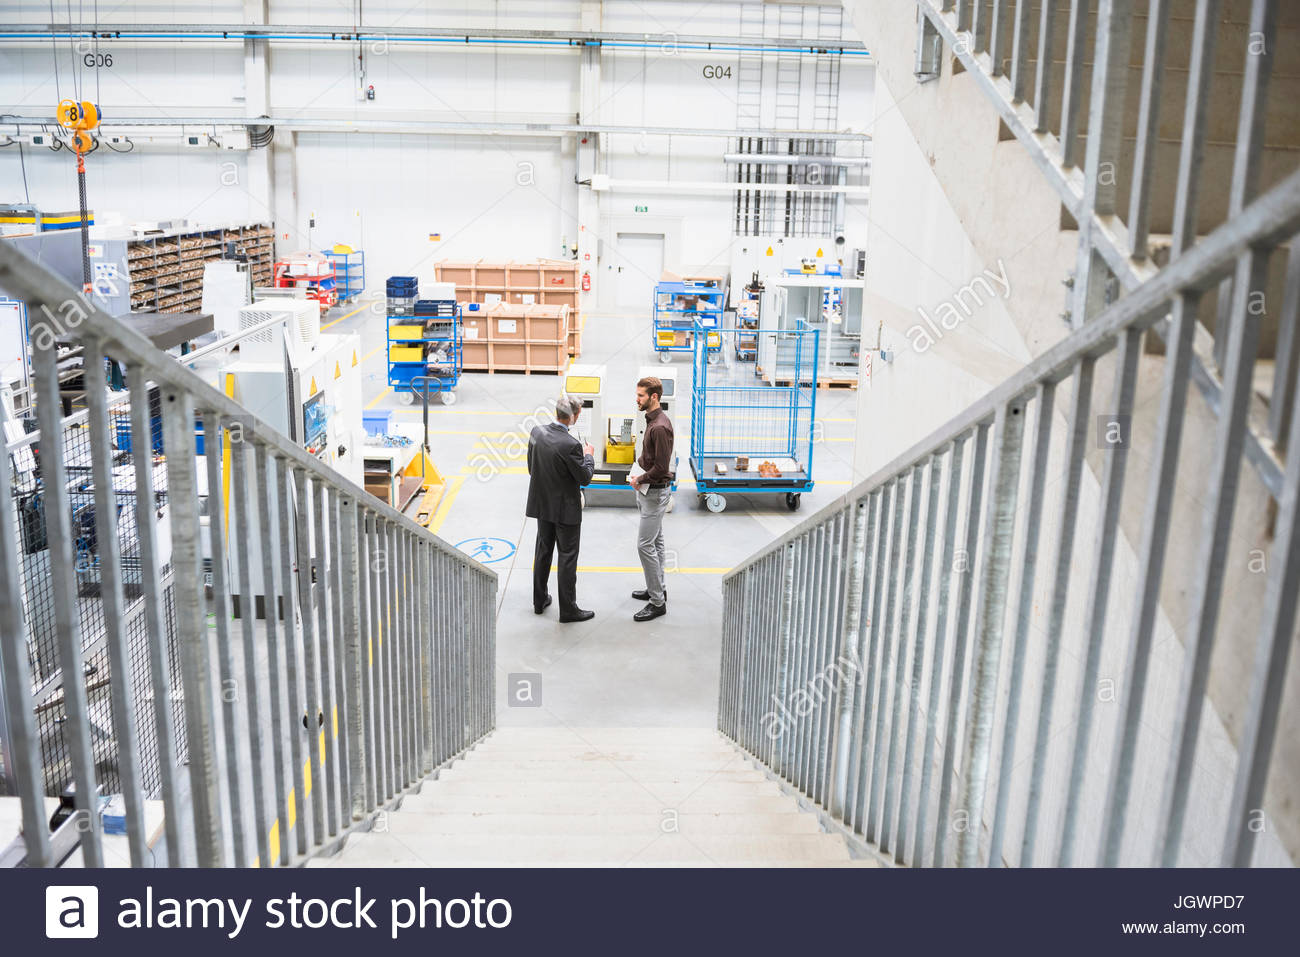 Supervisor and manager having discussion in distribution warehouse - Stock Image